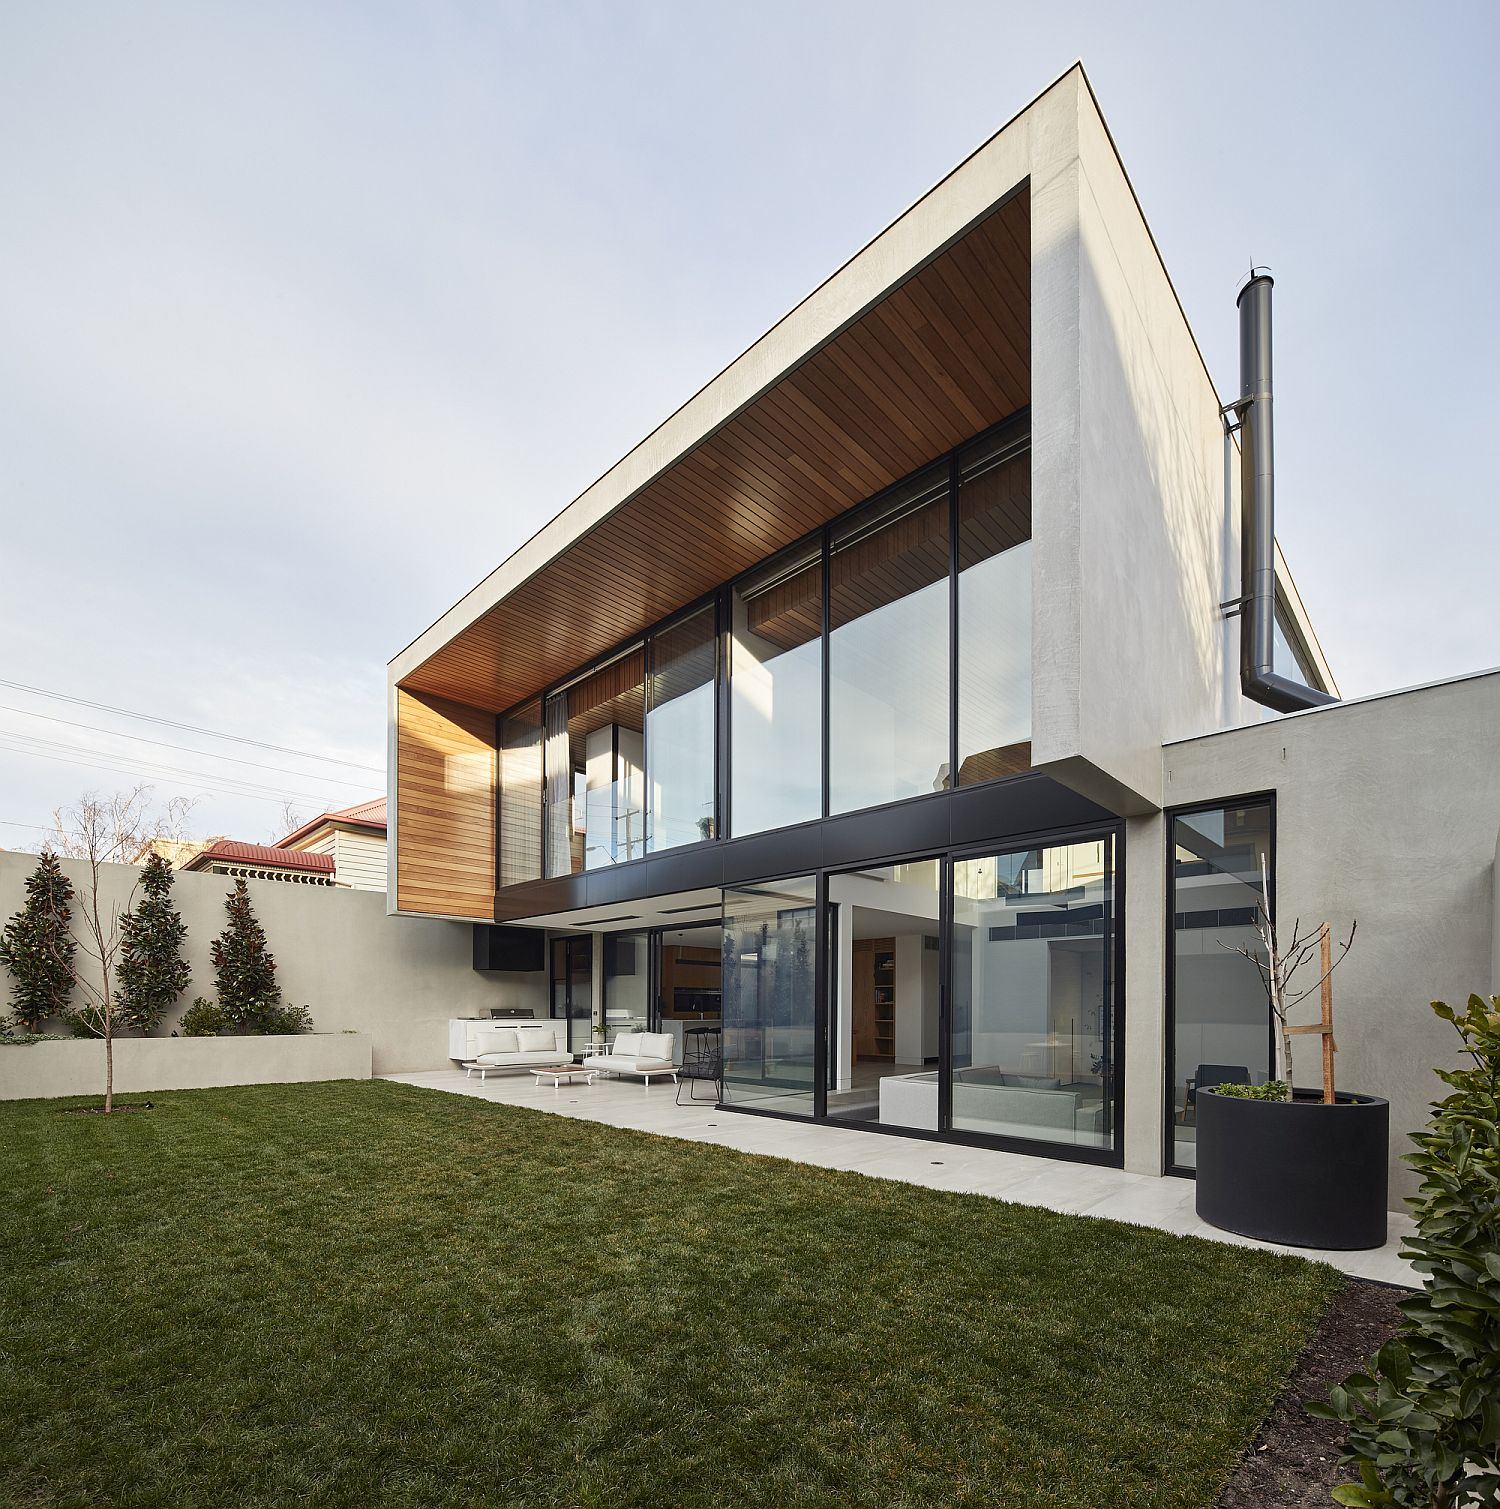 Lovely-use-of-timber-adds-another-layer-of-textural-beauty-to-the-house